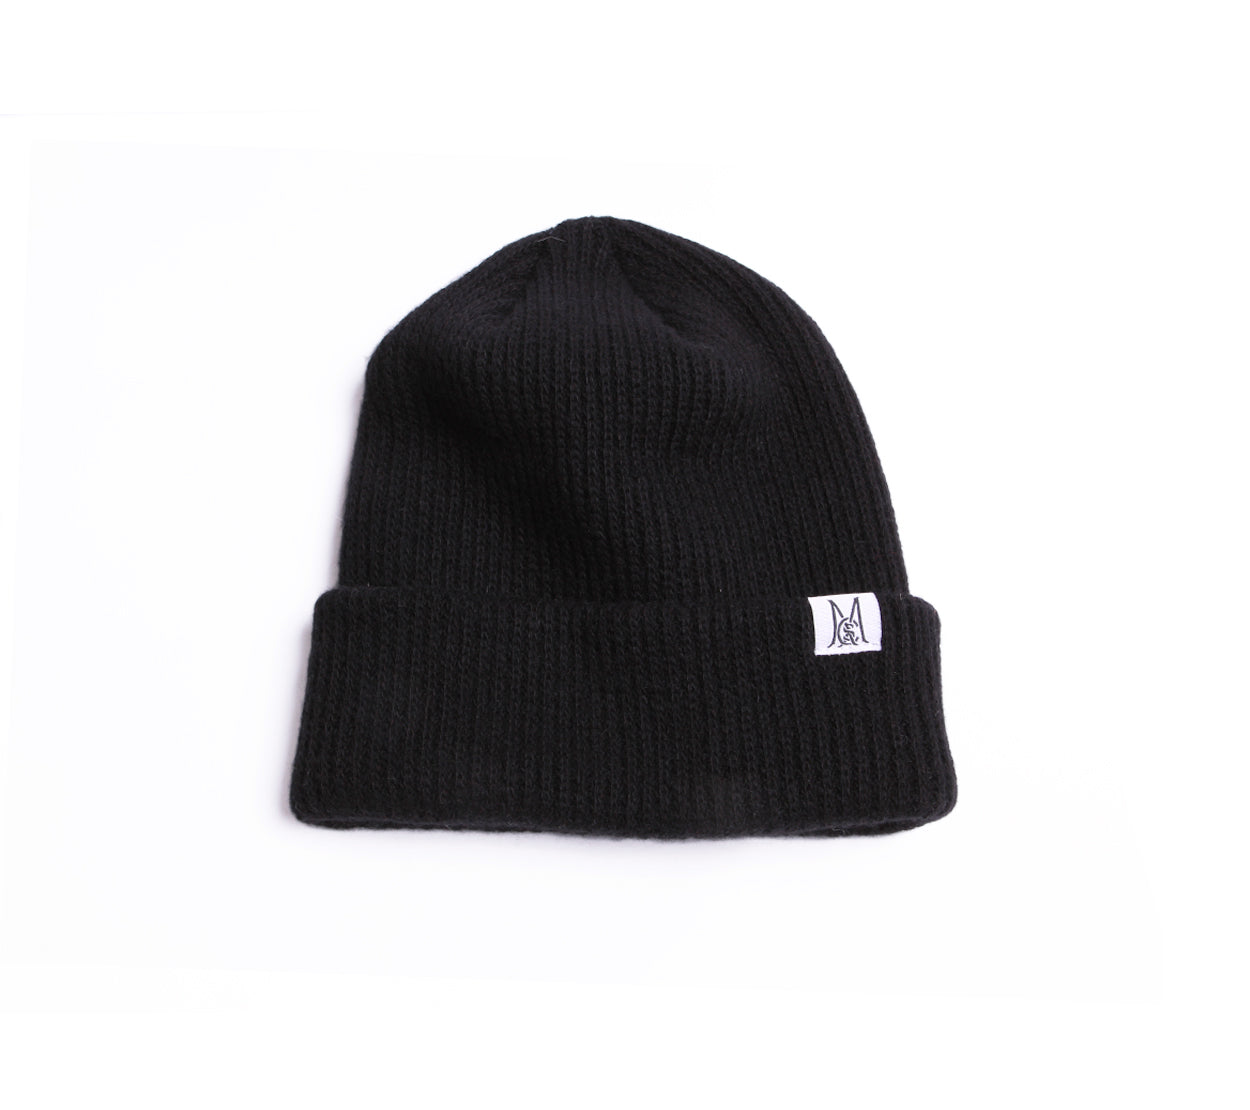 8c12386b Mercantile Recycled Cashmere Beanie | Black – Clark Street Mercantile